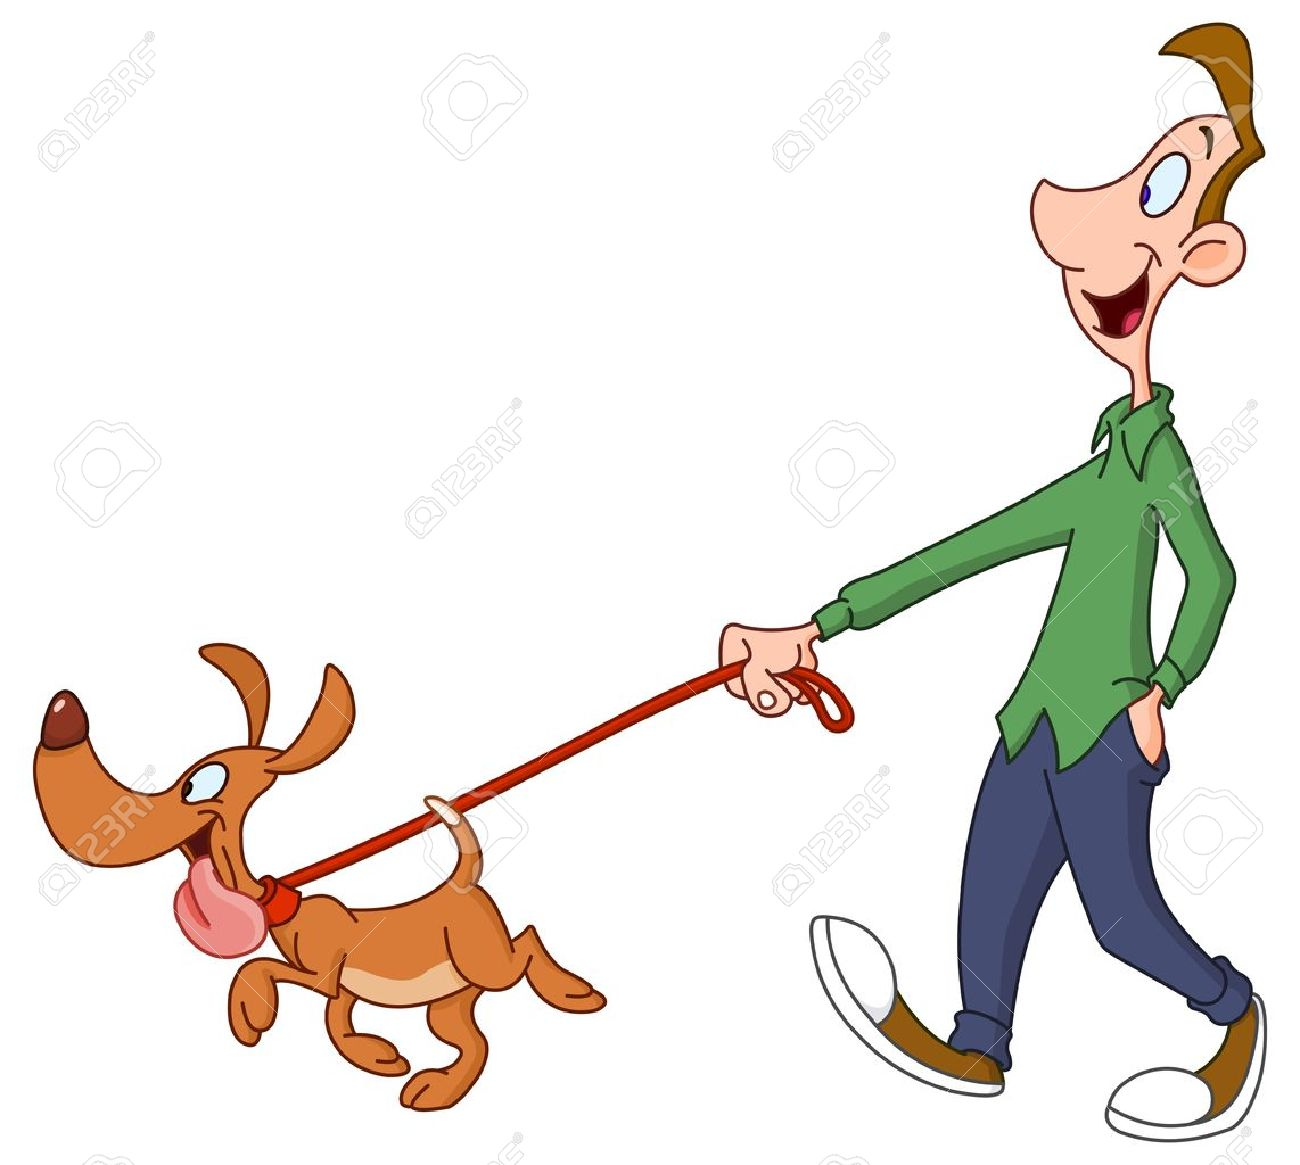 man walking dog royalty free cliparts vectors and stock rh 123rf com dog walkers clipart boy walking dog clipart